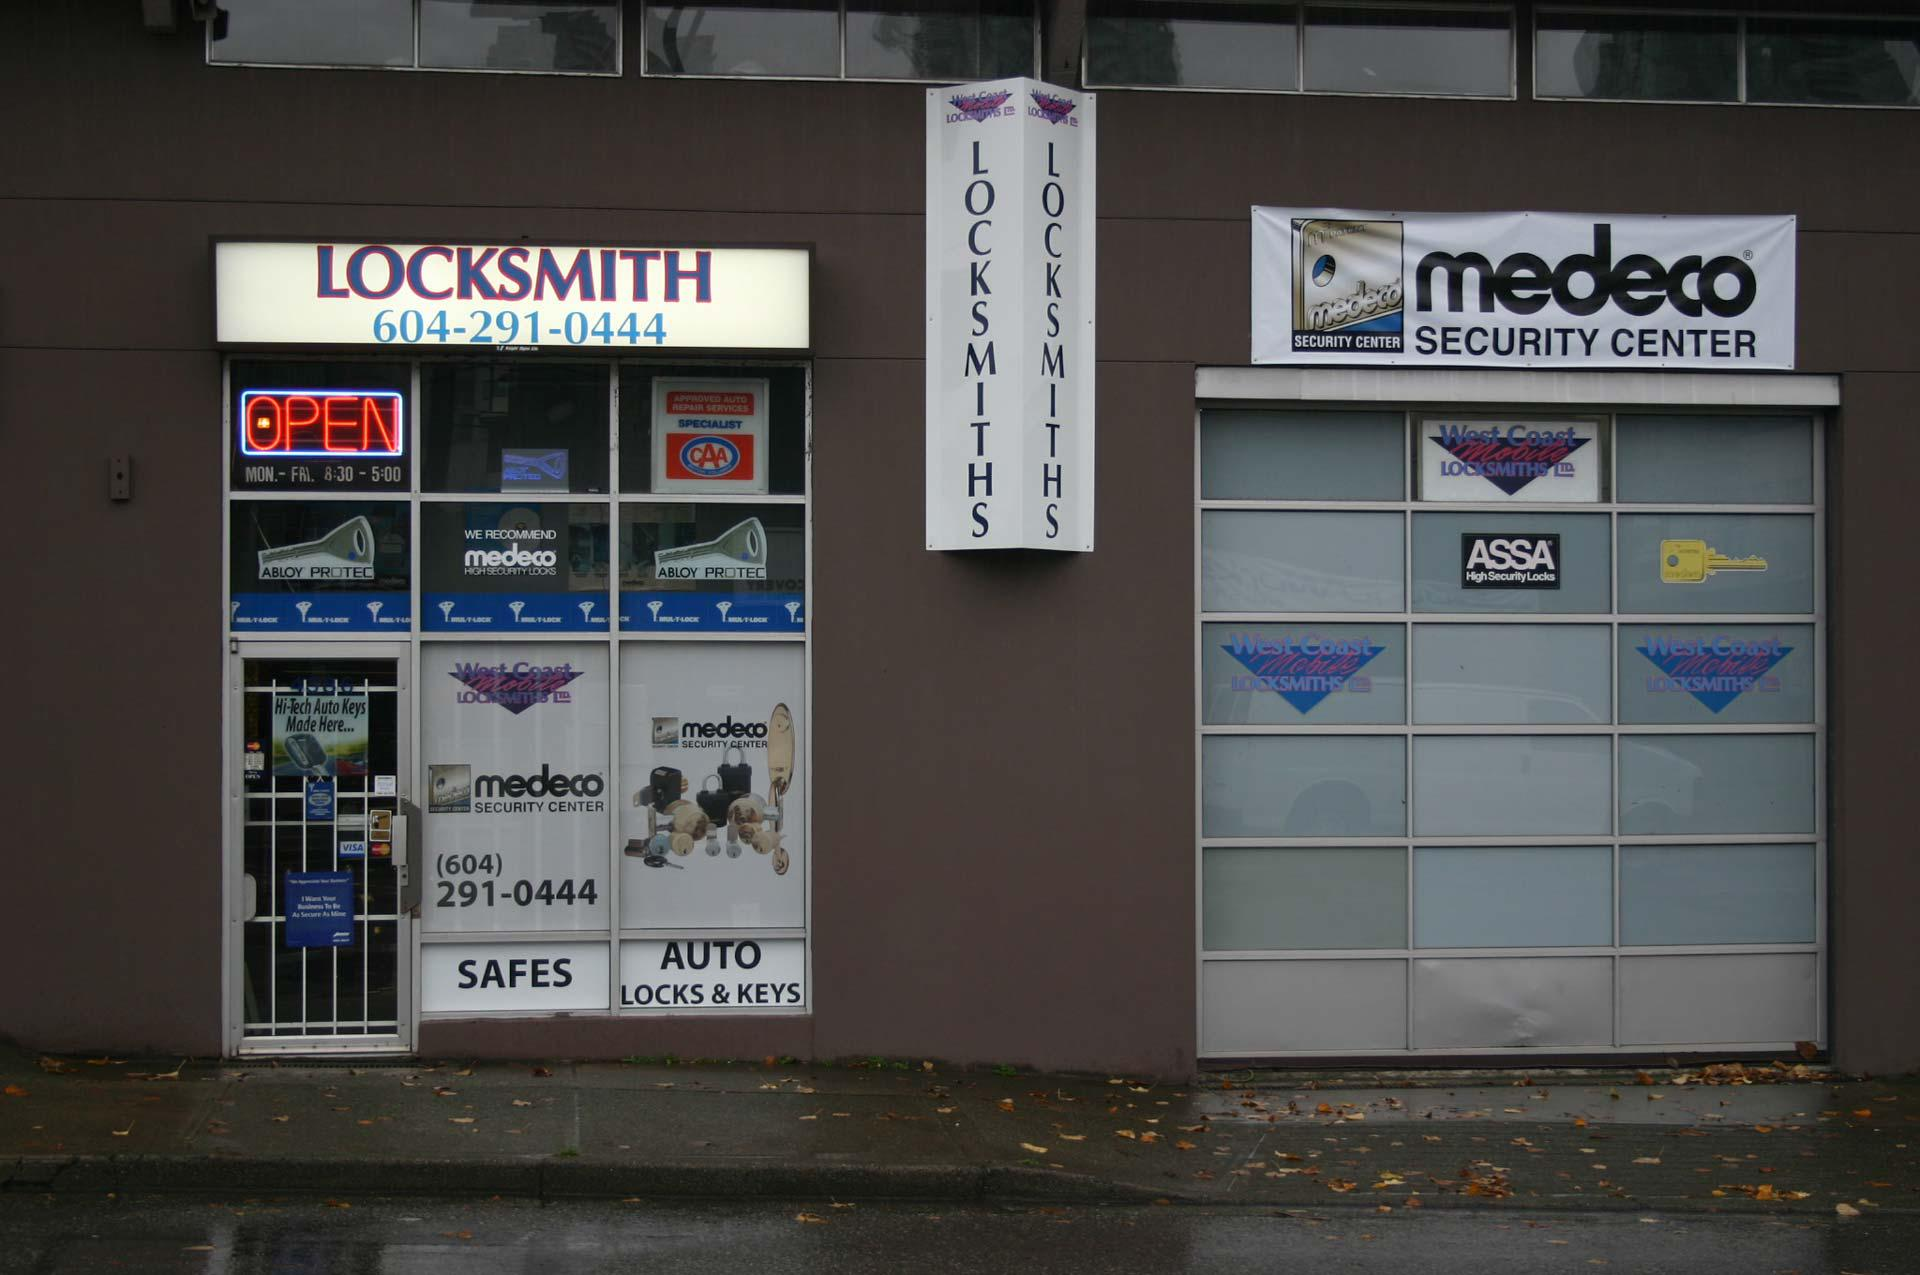 West Coast Mobile Locksmiths in Burnaby: We sell and service safes for all your valuables.